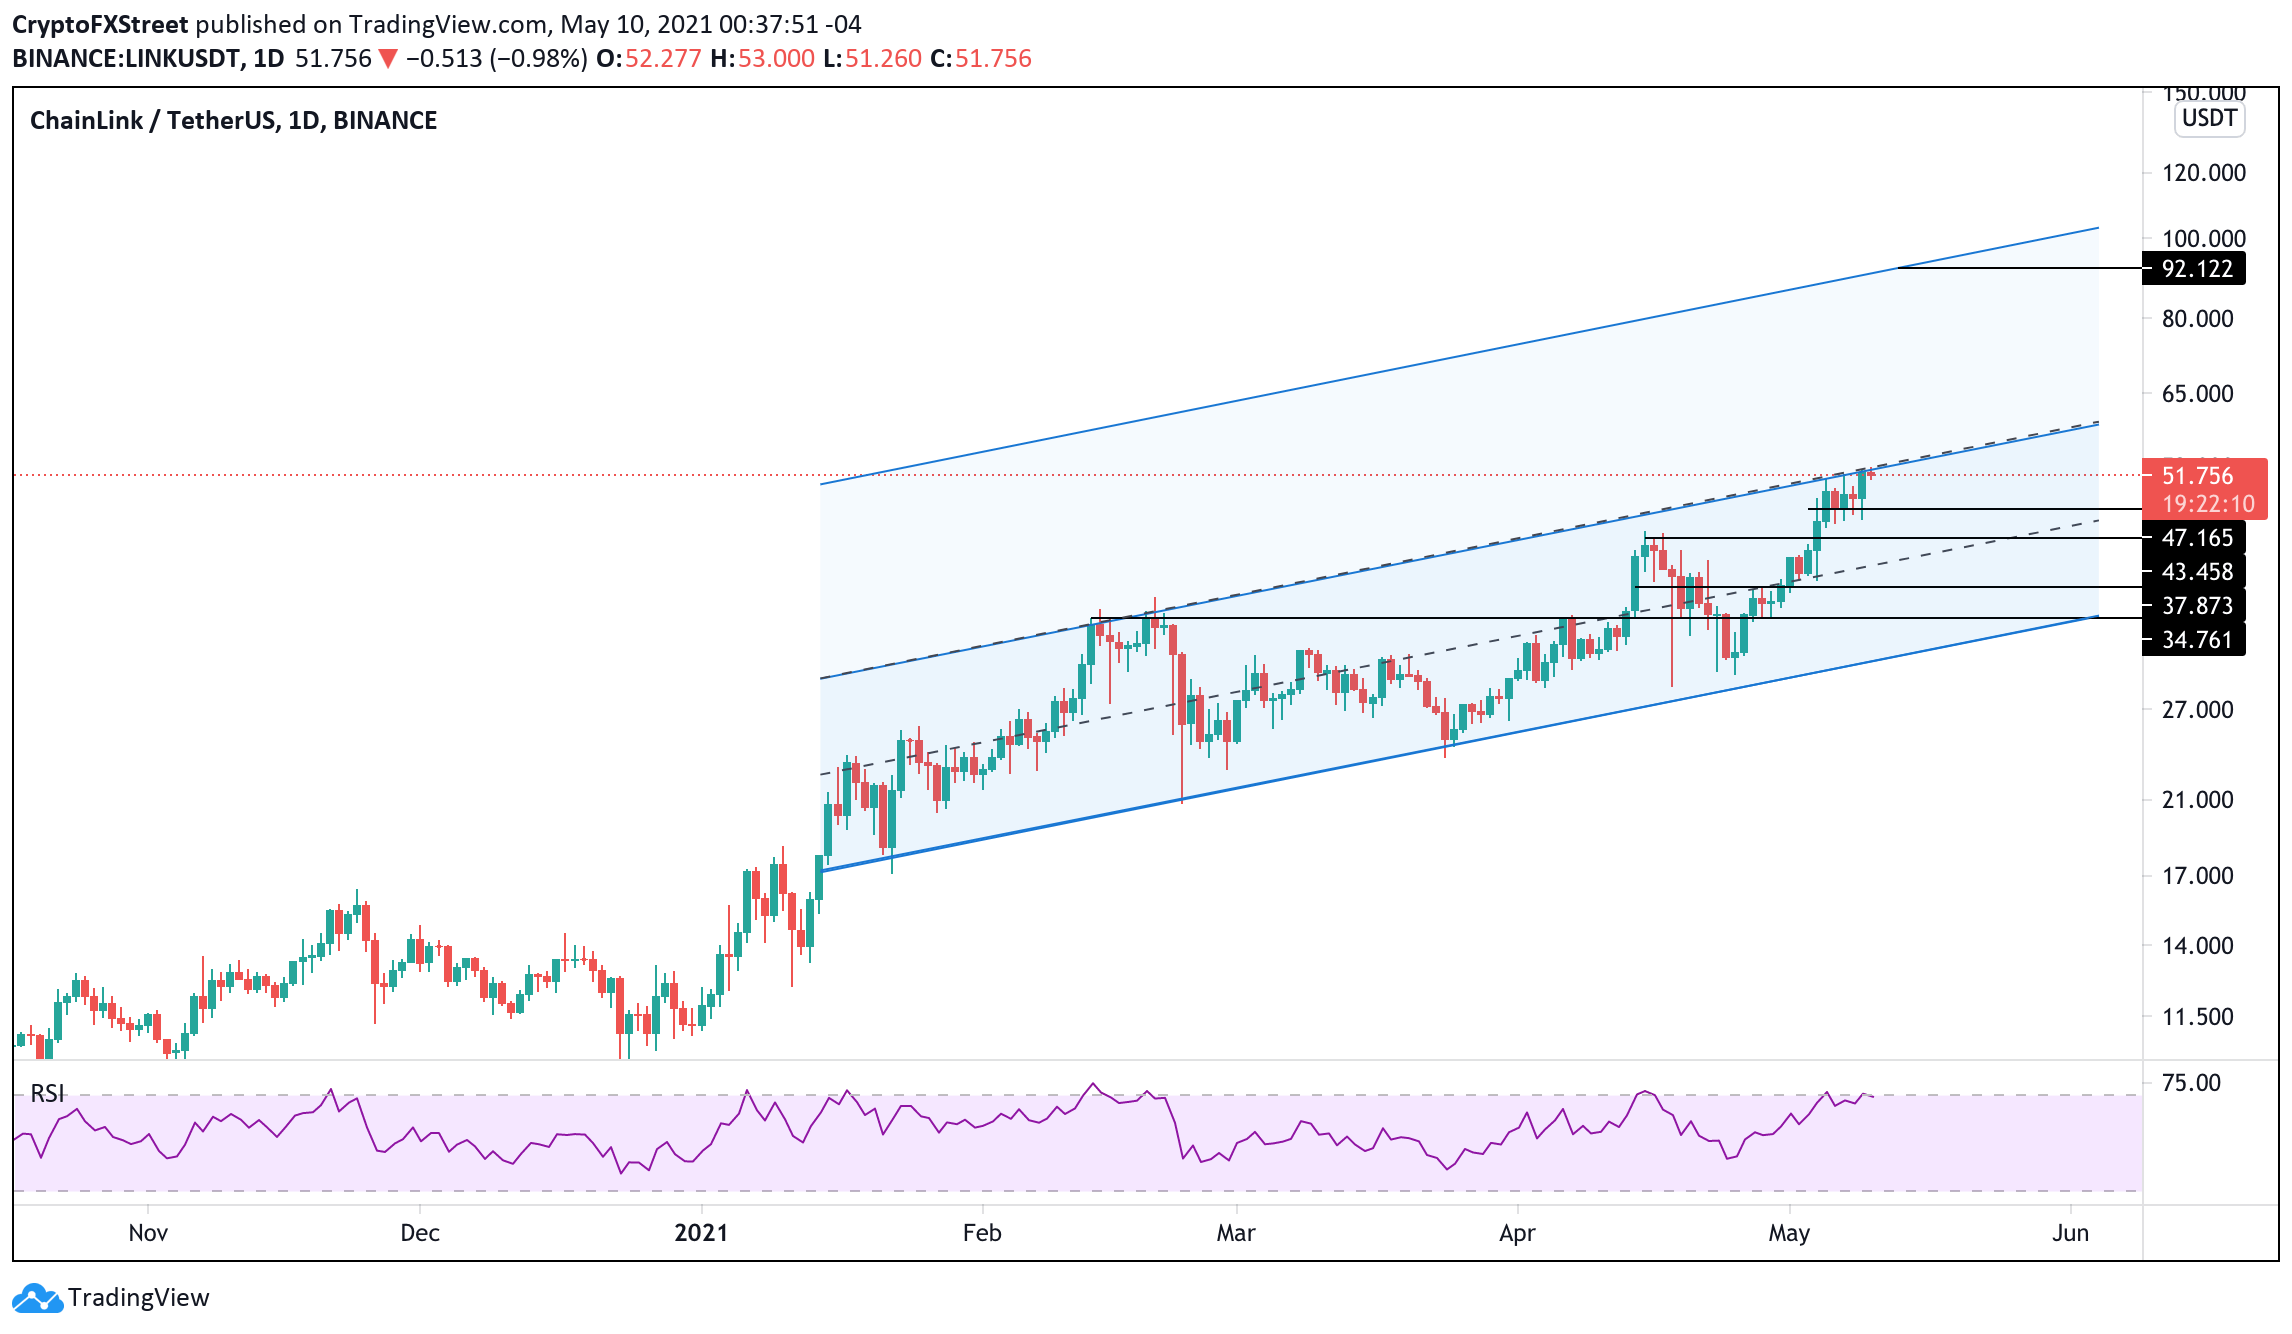 LINK/USDT Daily chart